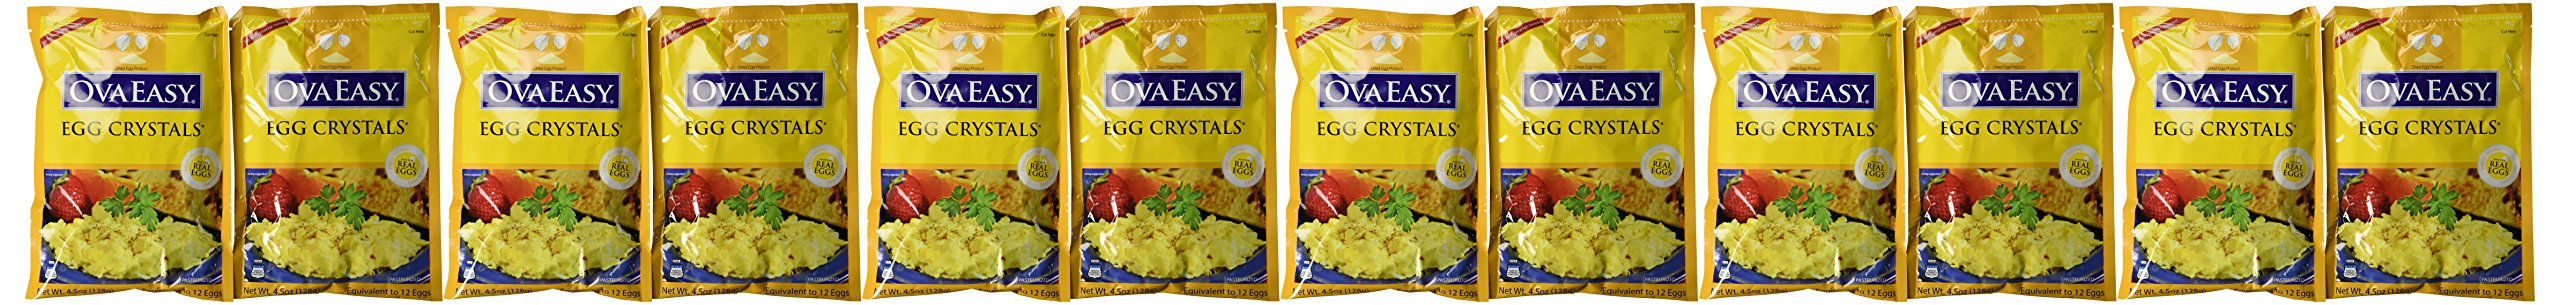 Ova Easy Egg Crystals – Dehydrated Eggs – Camping and Survival Food - 4.5 oz Bag – 12 Pack